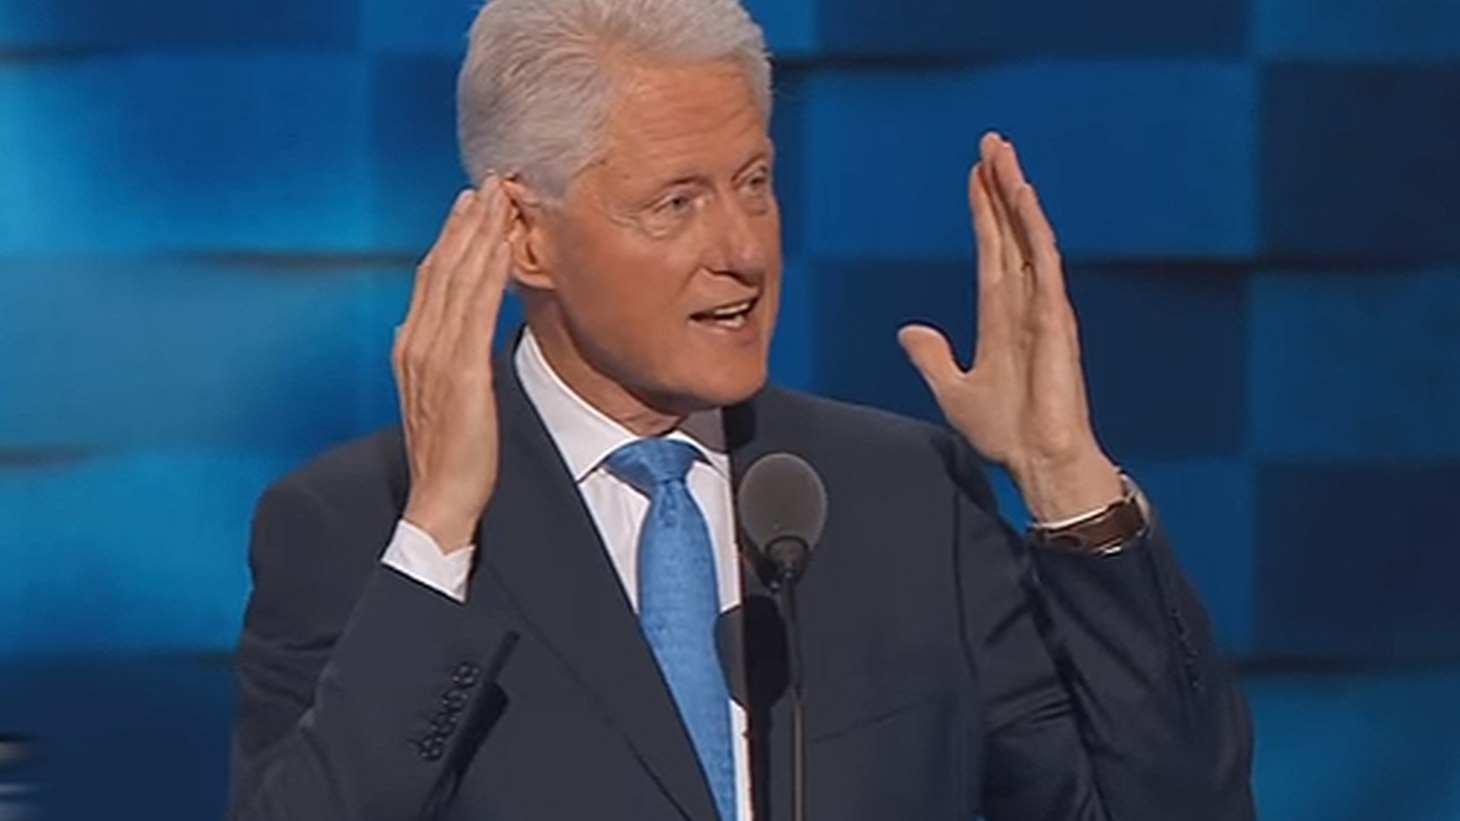 Last night in Philadelphia, Bill Clinton delivered a lengthy list of his wife's accomplishments and accused Trump and other Republicans of creating a false image.